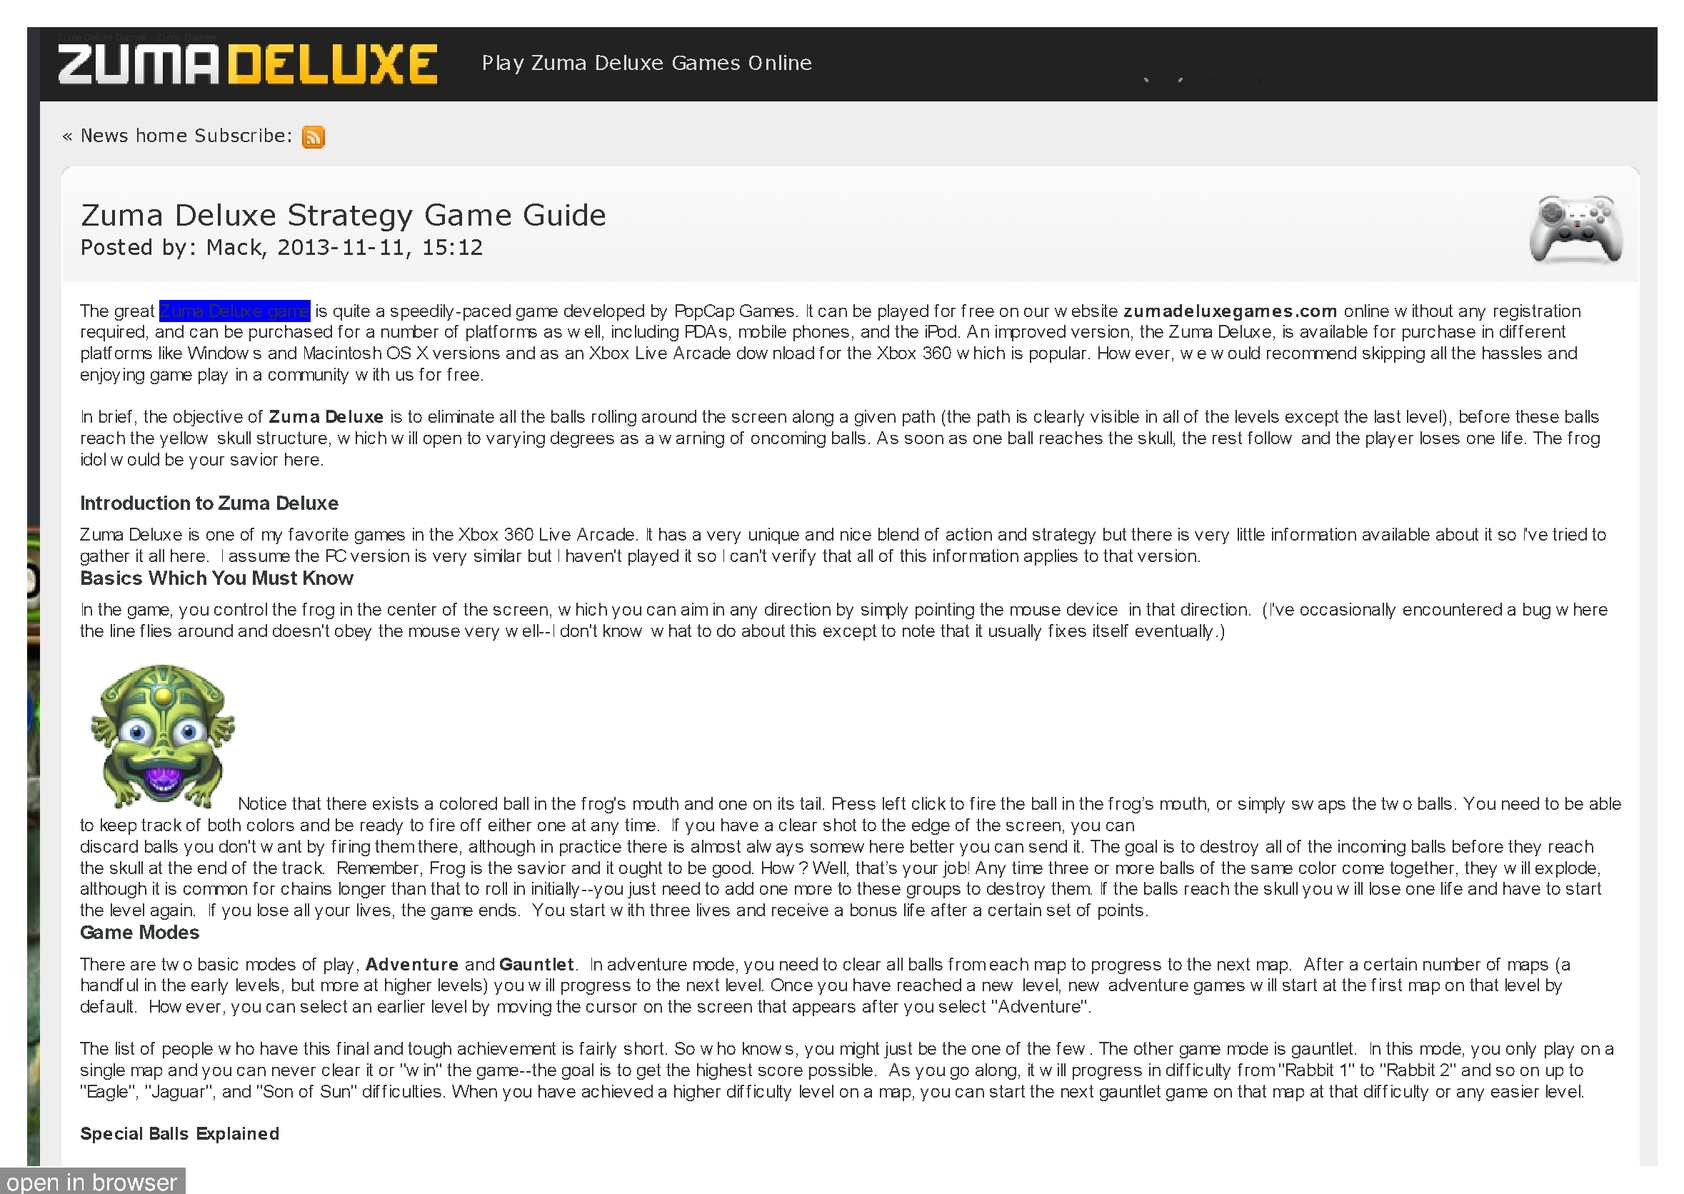 Calameo Zuma Deluxe Strategy Game Guide